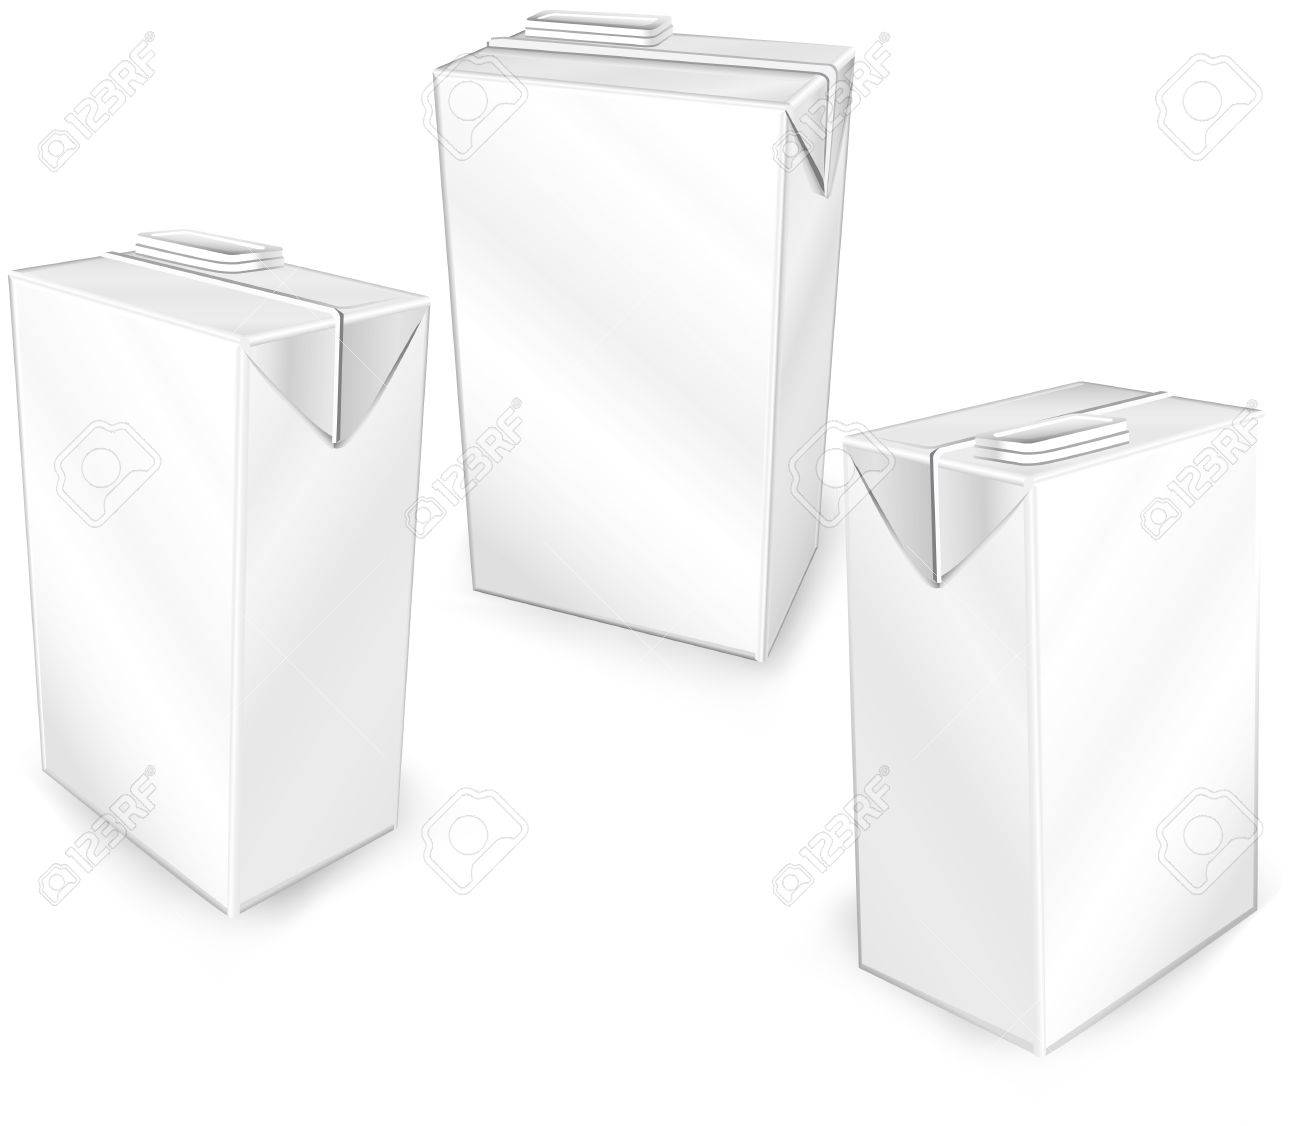 Milk or juice carton packages isolated on a white background, vector illustration Stock Vector - 4605615